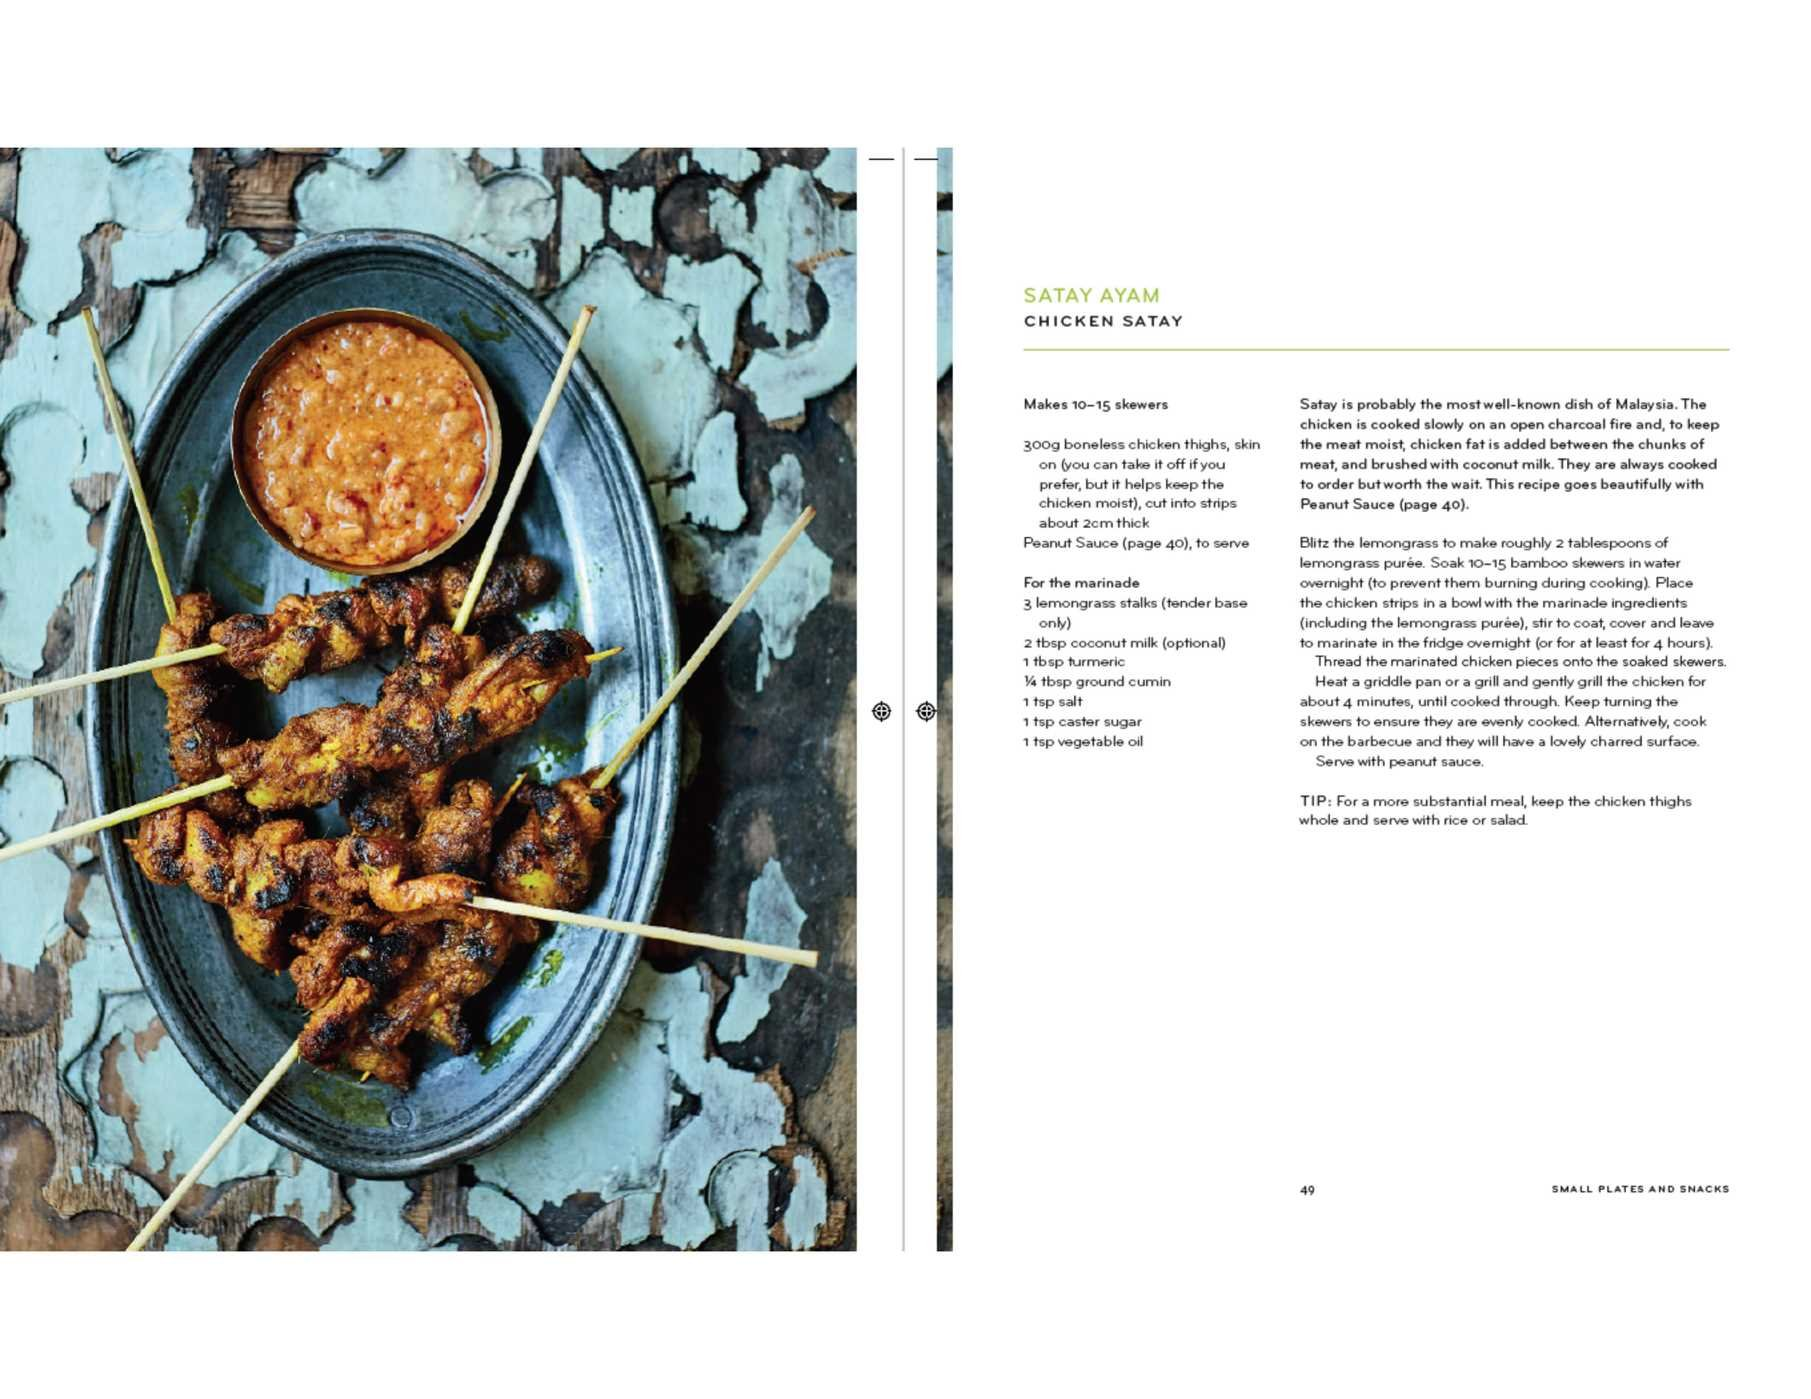 Malaysia recipes from a family kitchen ping coombes 9781681881850 malaysia recipes from a family kitchen ping coombes 9781681881850 amazon books forumfinder Gallery